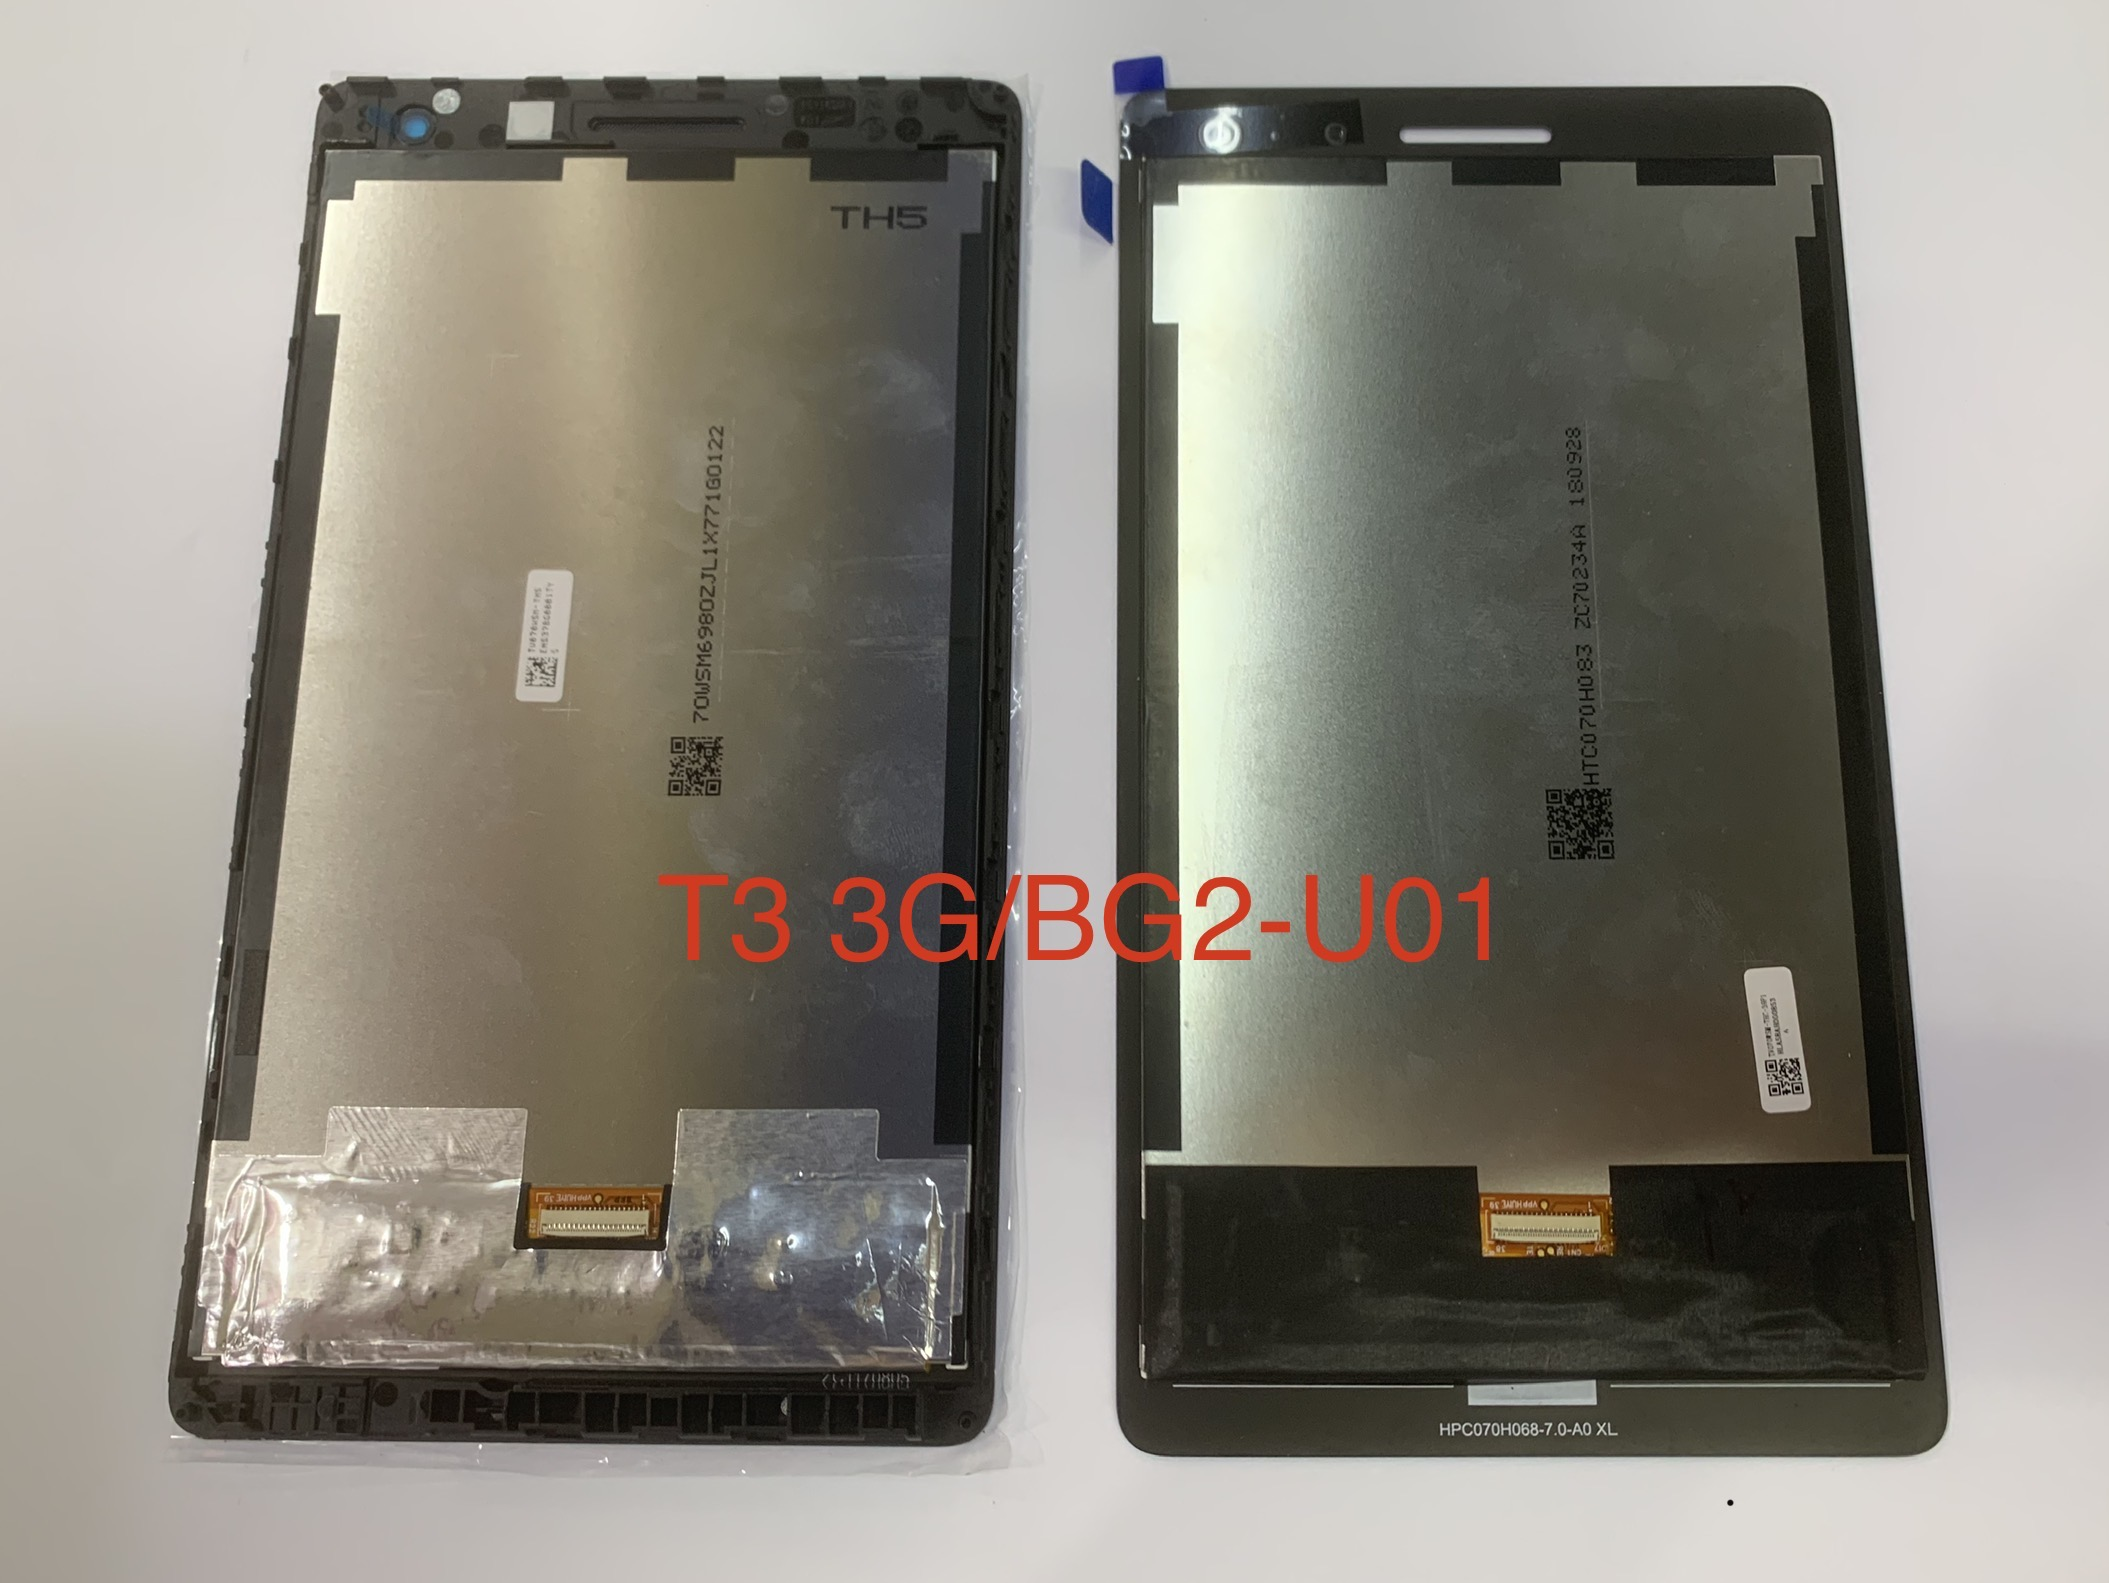 Monitor-Assembly Sensor Frame Lcd-Display Touch-Screen BG2-U03 Huawei Digitizer Glass title=